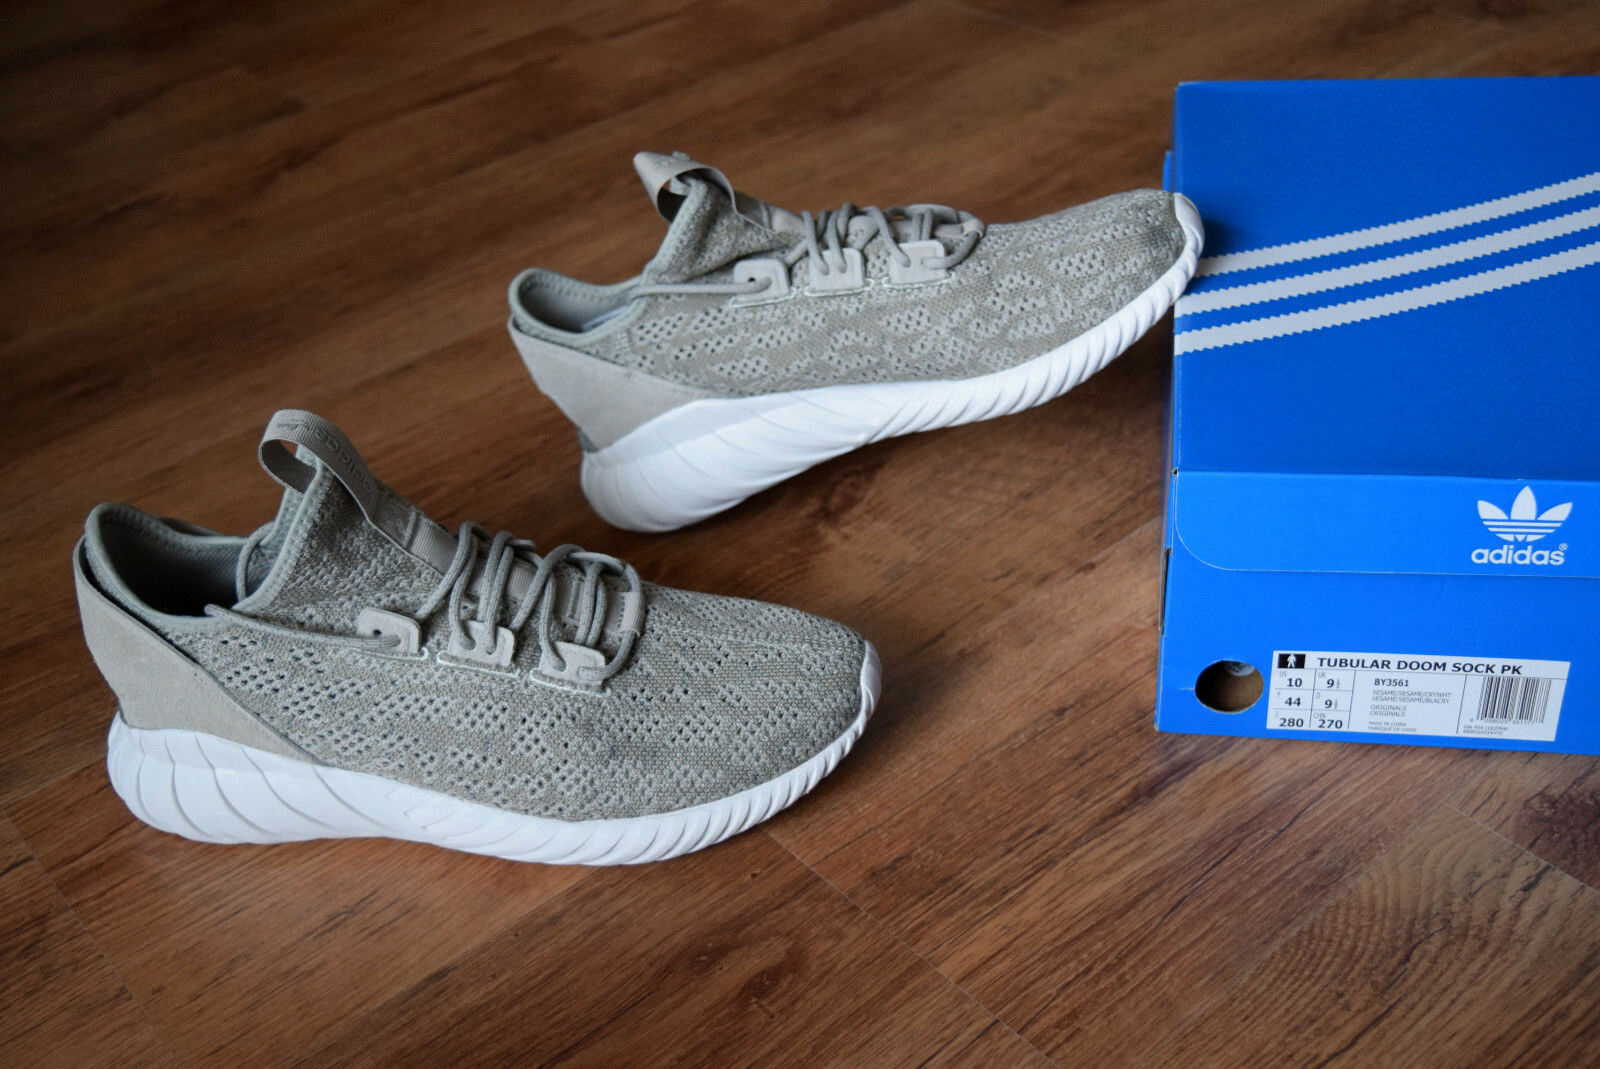 Adidas Adidas Adidas Tubular Doom Sock PK  41 43 44 45 46 BY3561 shadow radial yeezy runner 5fd1b4